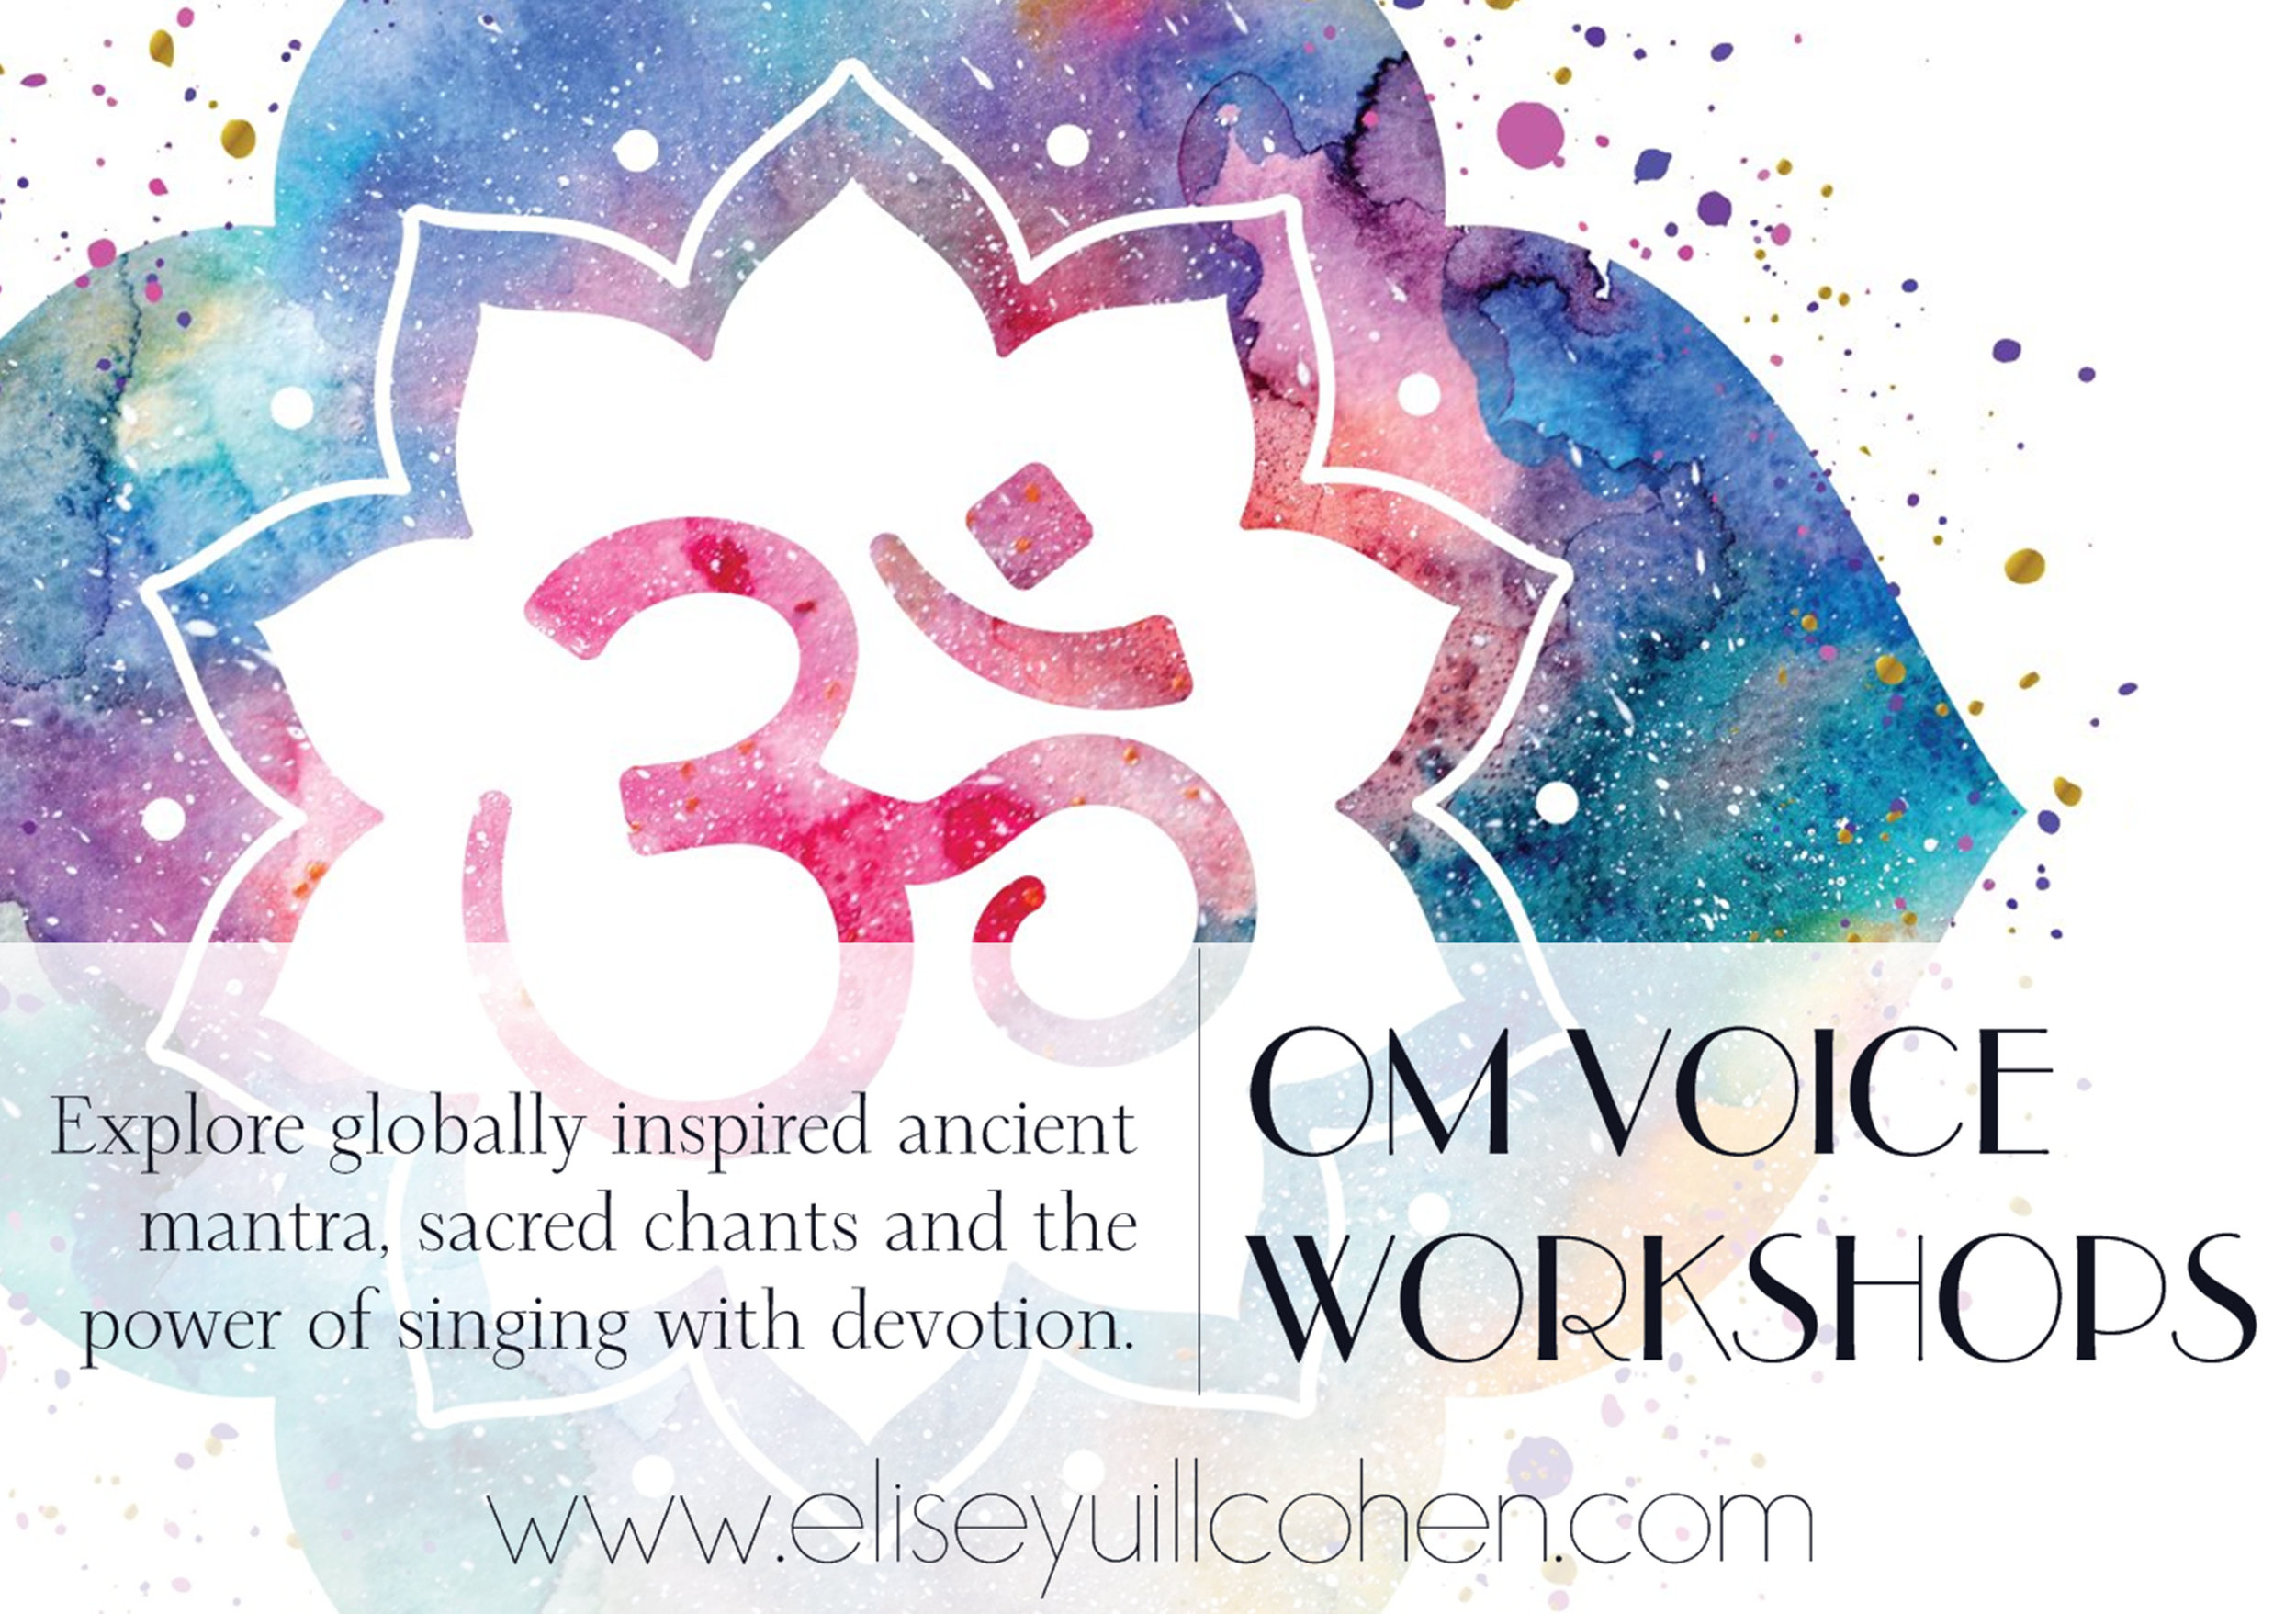 Om Voice Workshop Nov 2018 Outline.jpg